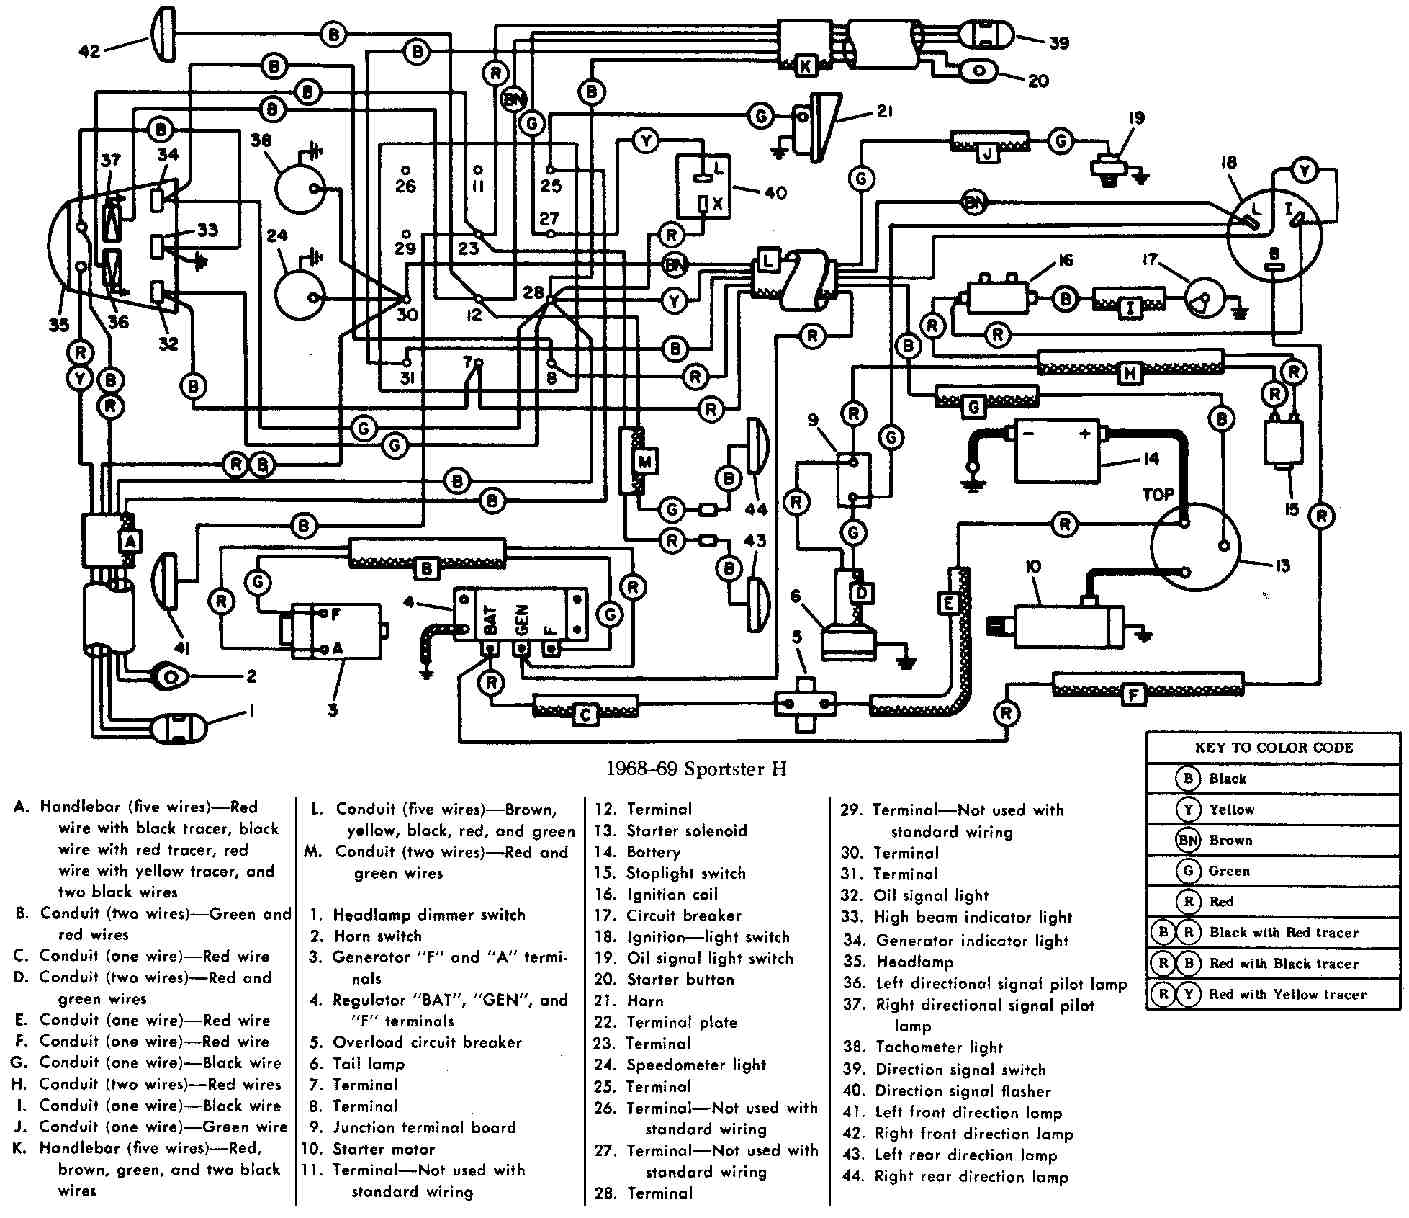 Engine Schematics 1996 Harley Ultra Wiring Diagram View A View A Zaafran It